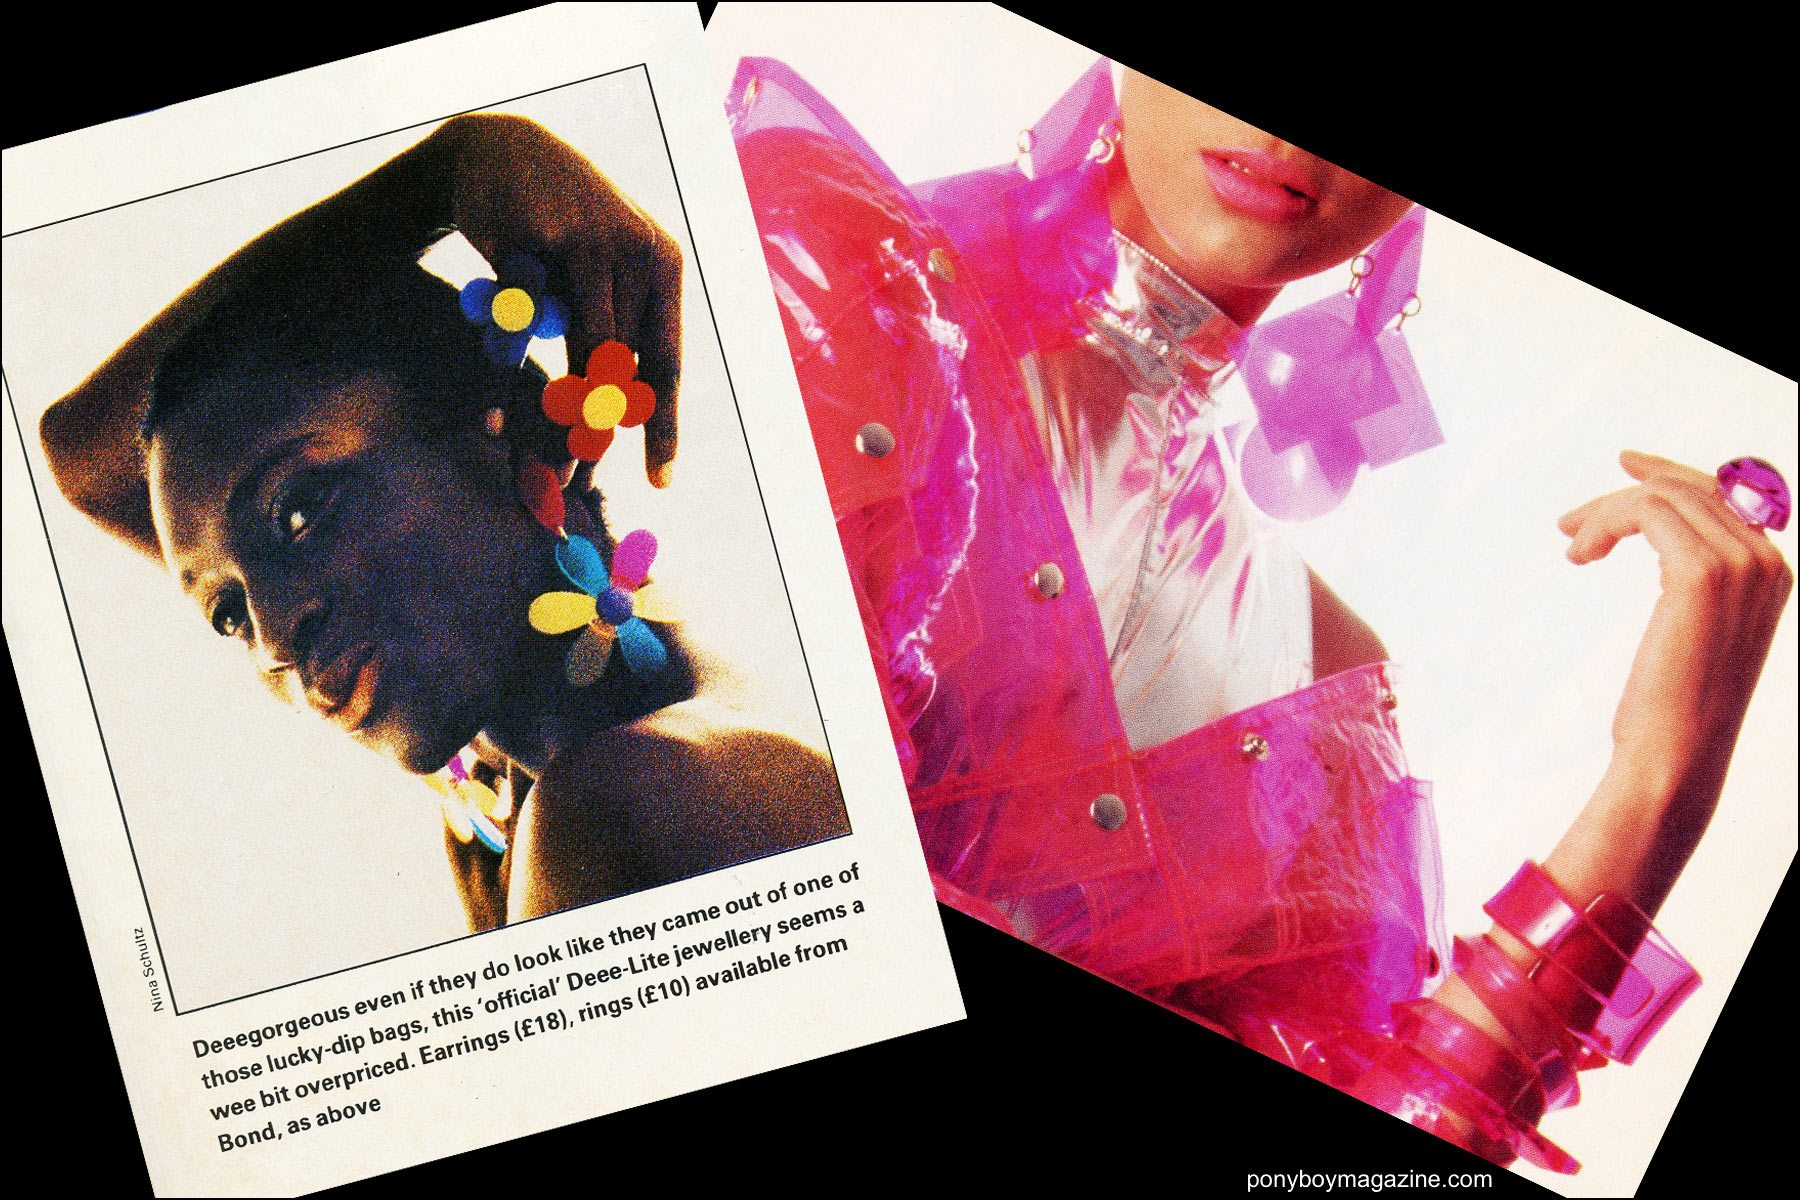 Tearsheets from The Face and Interview magazine of Maria Ayala jewelry. Ponyboy magazine NY.